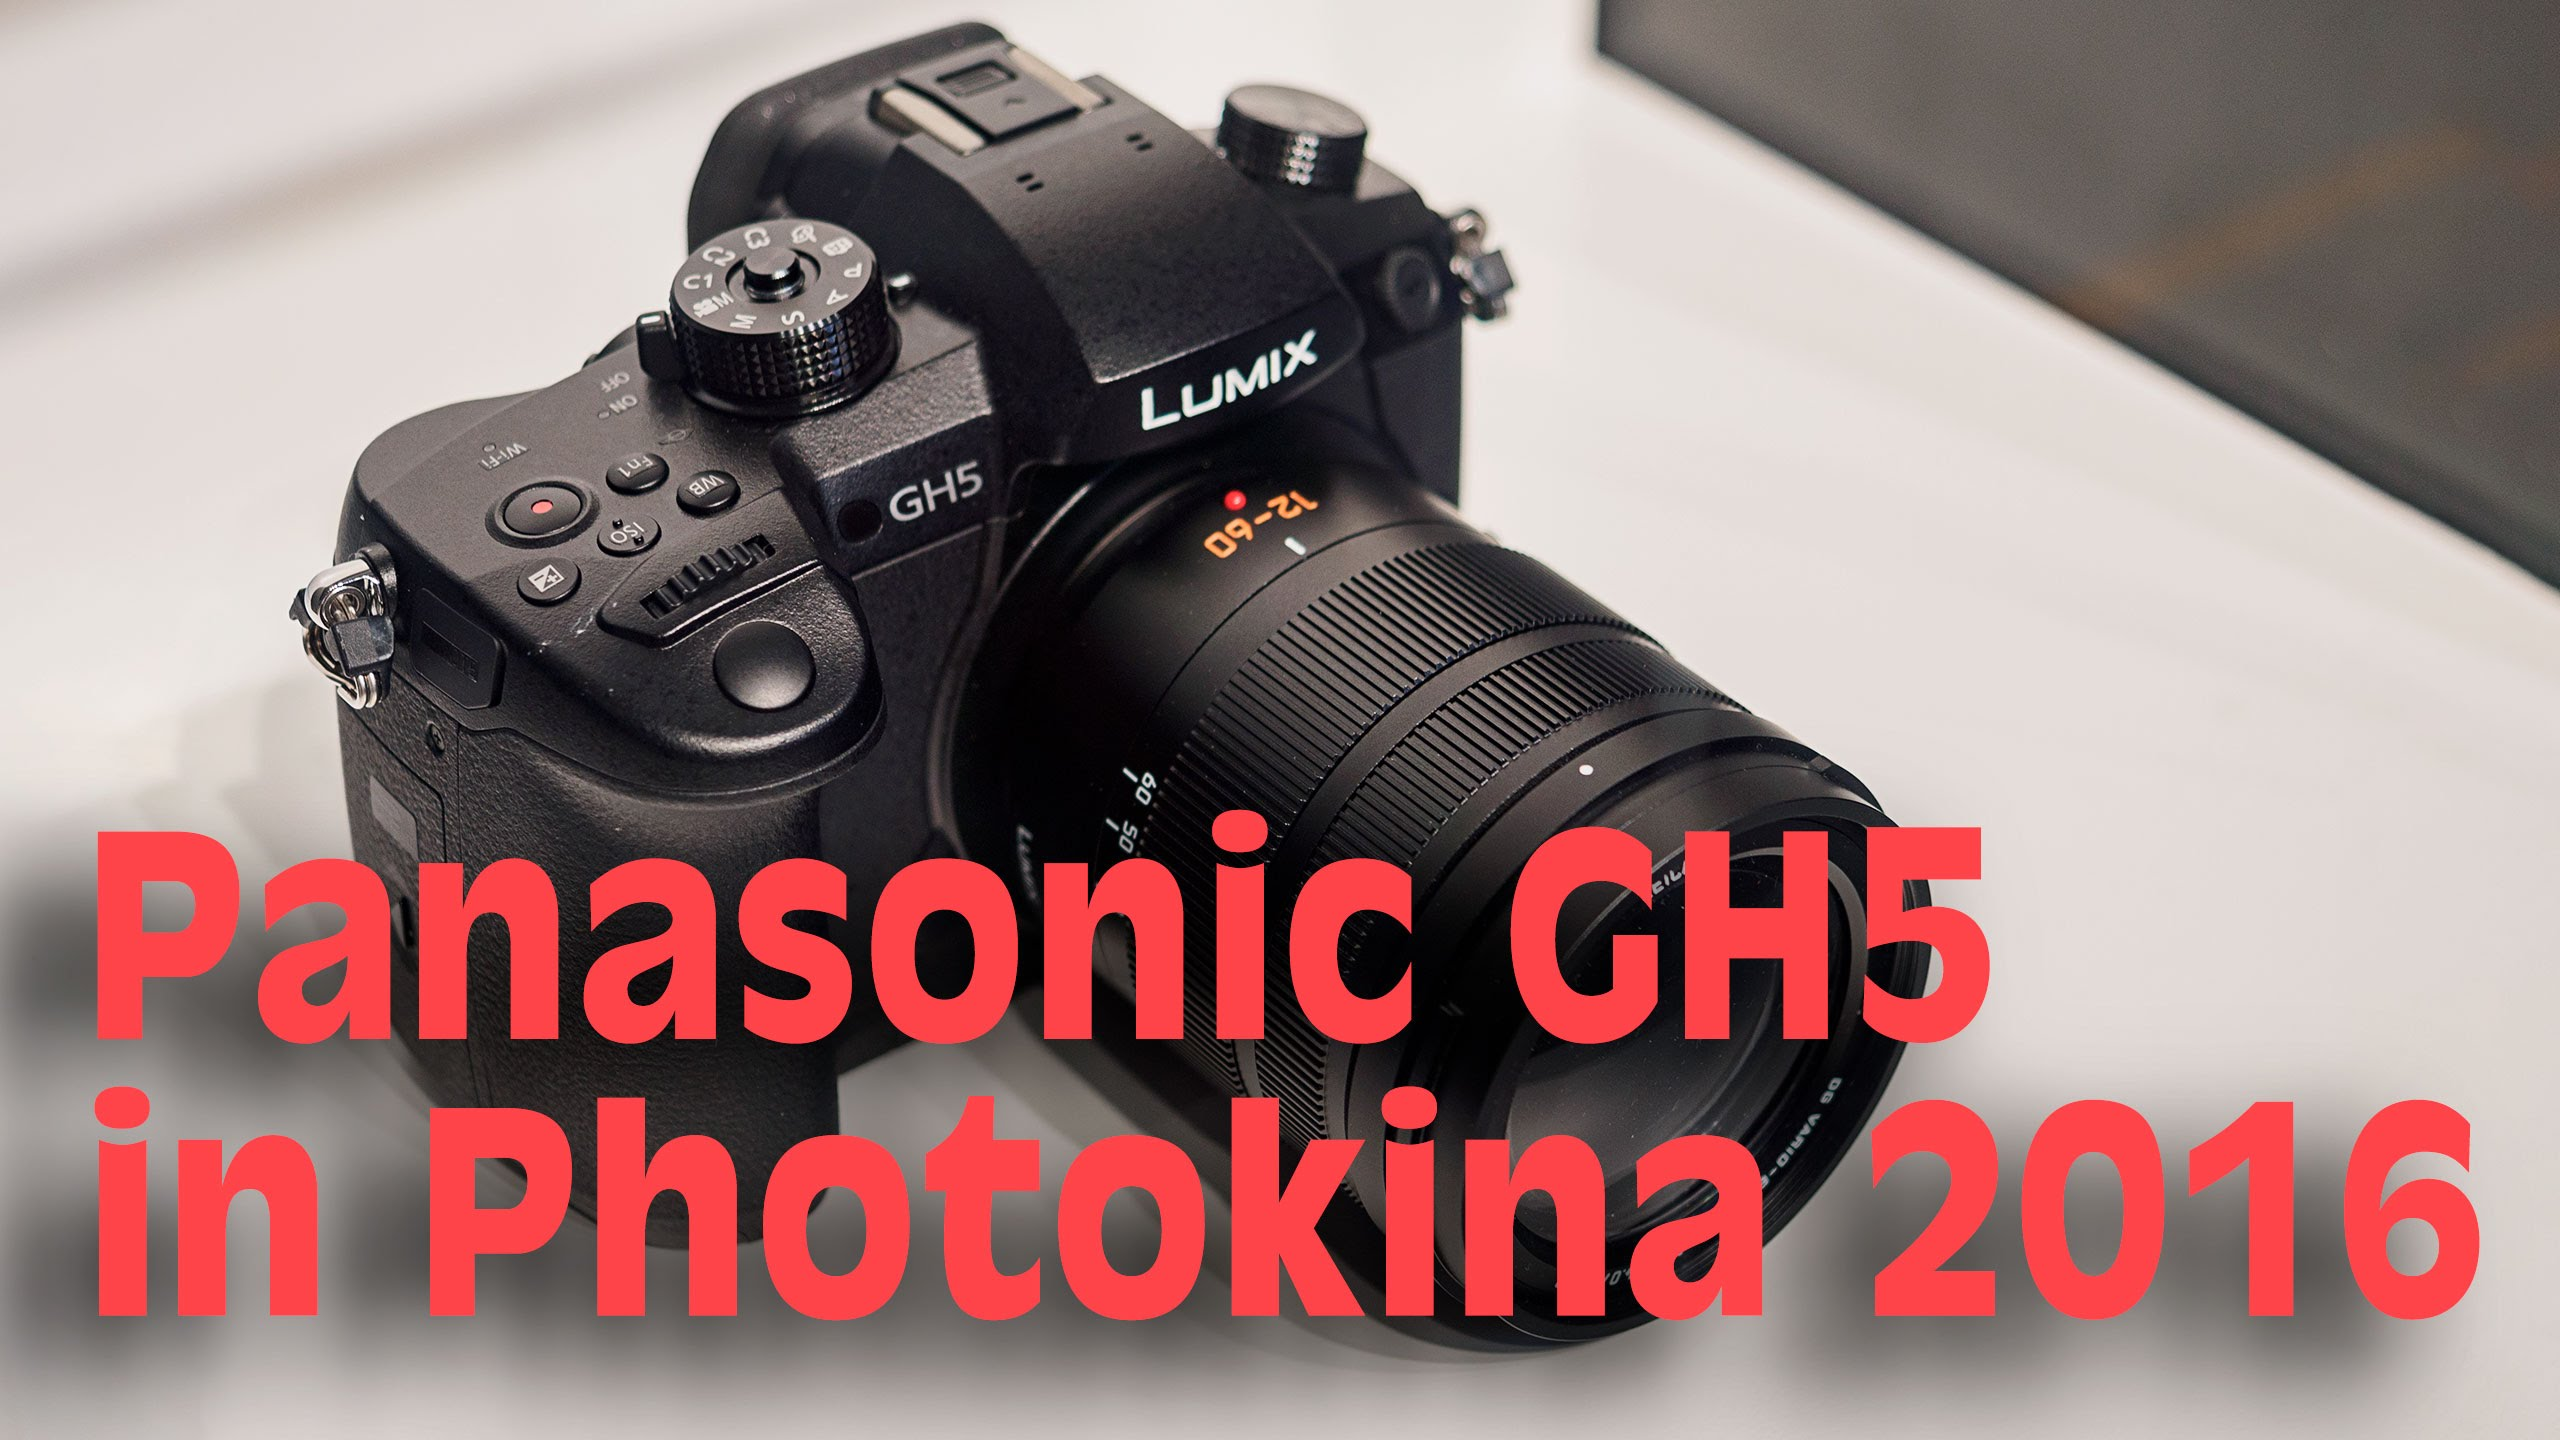 Photokina 2016 – Panasonic Booth – a Look at the GH5, G80, FZ2000 and LX15